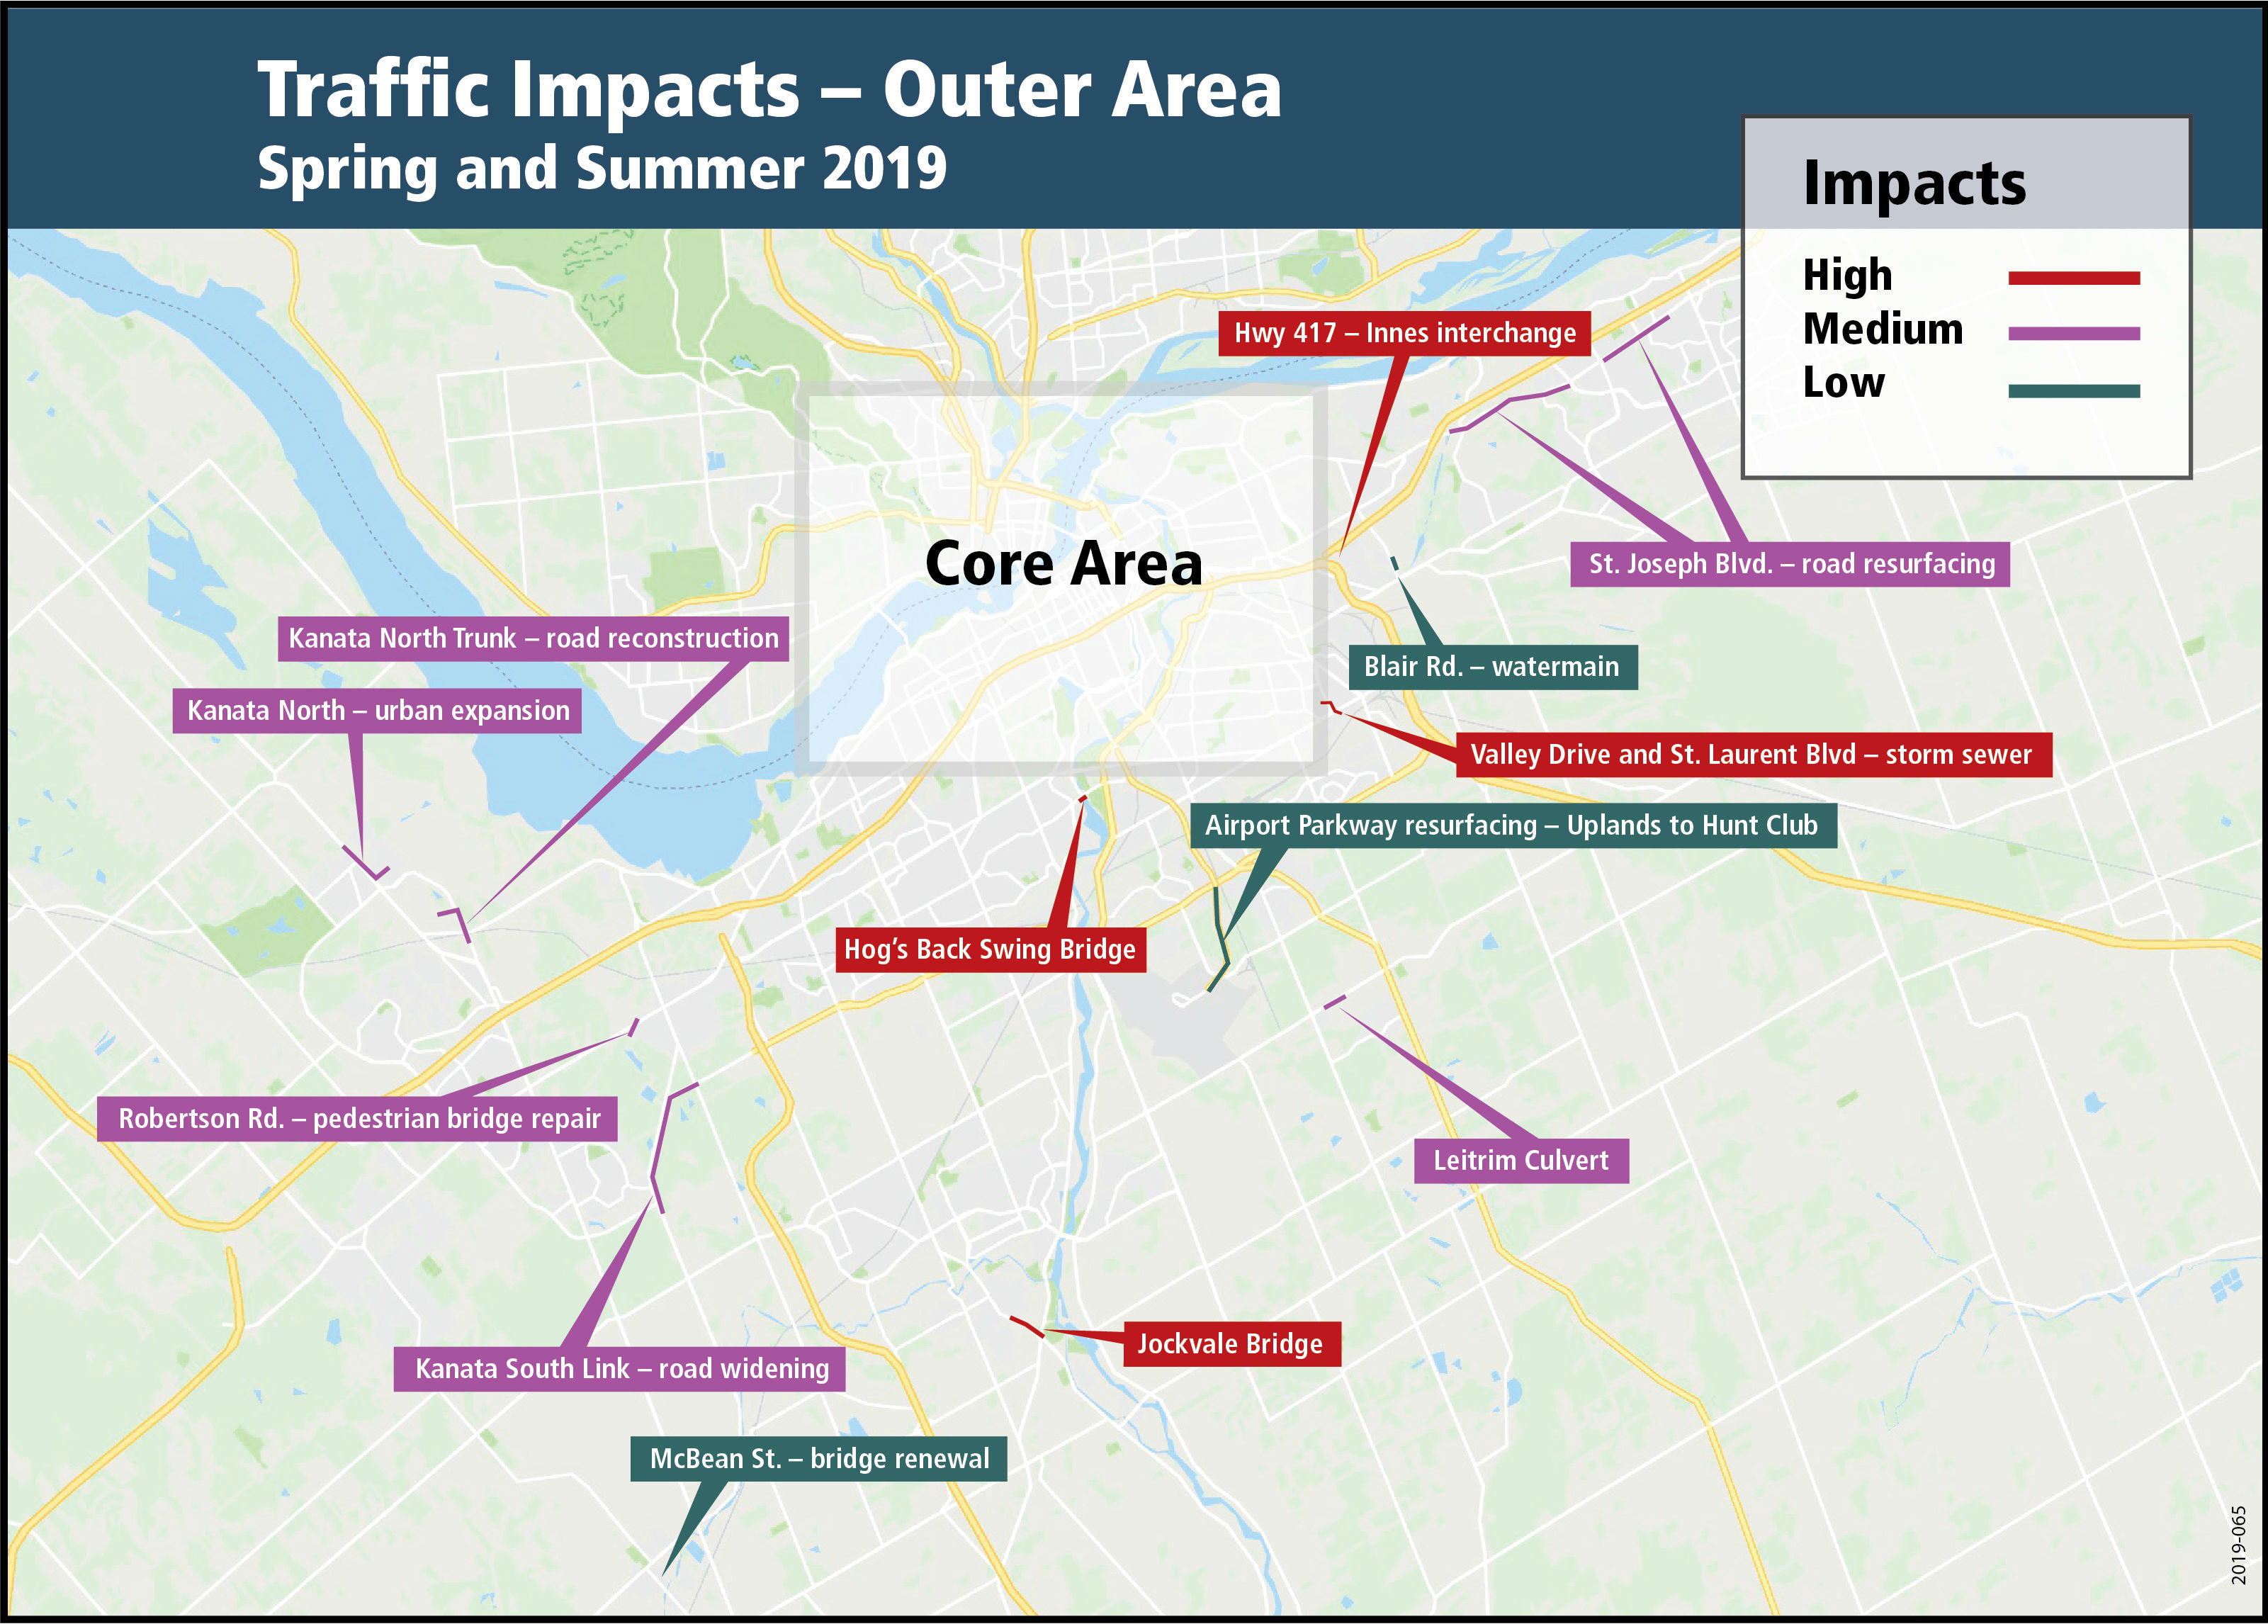 A map showing the low, medium and high traffic impacts for the spring/summer of 2019 as a result of construction work within the outer area of Ottawa.